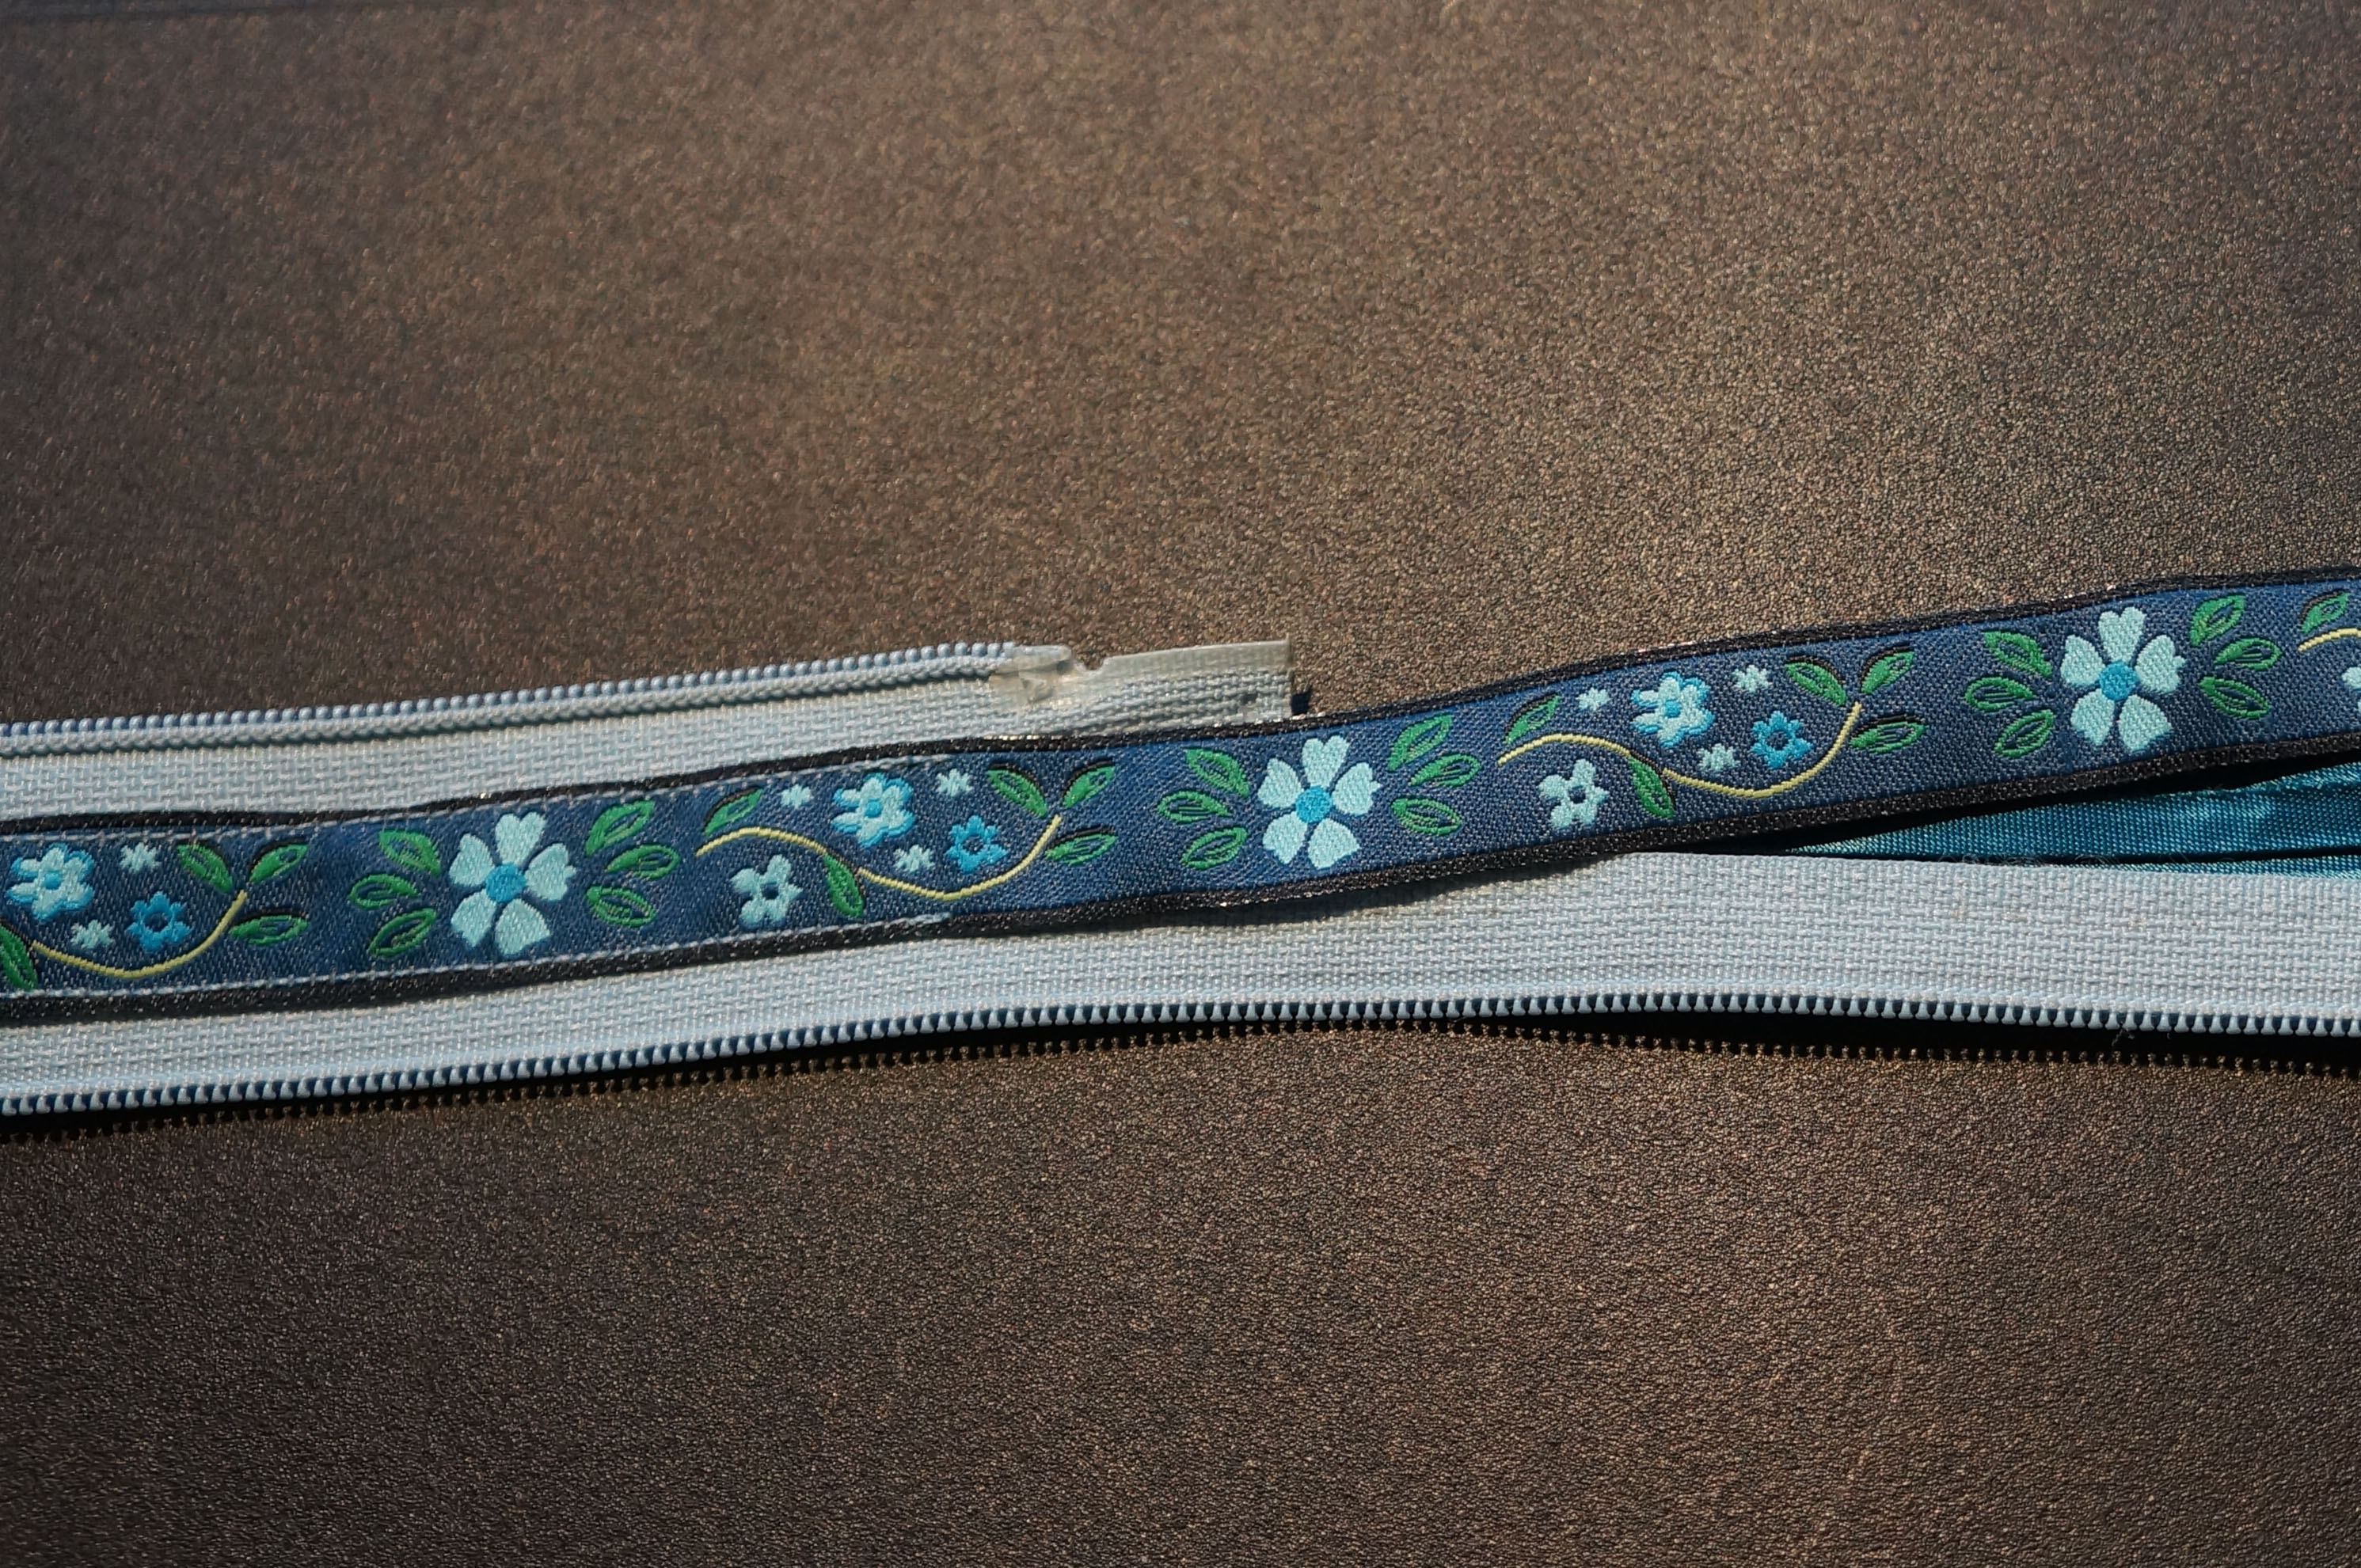 Picture of Stitch Ribbons to Zipper - the Long Straight (and Easy) Part